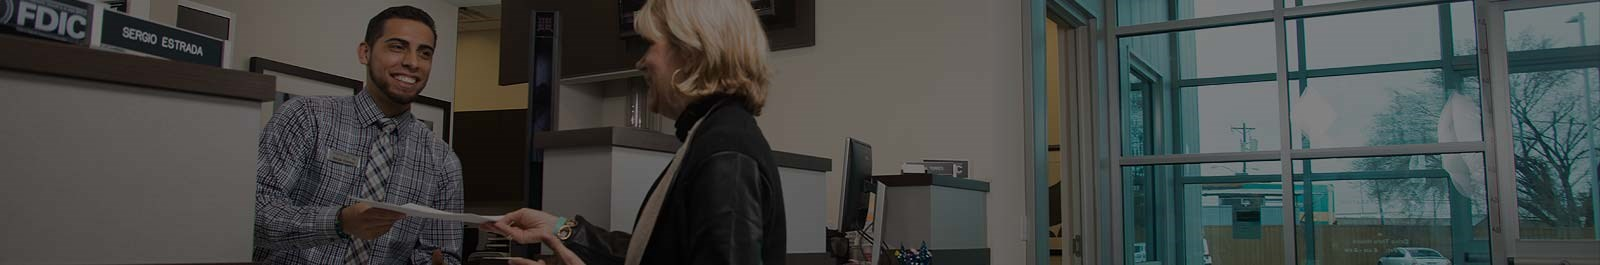 Header image - man and woman in an office setting